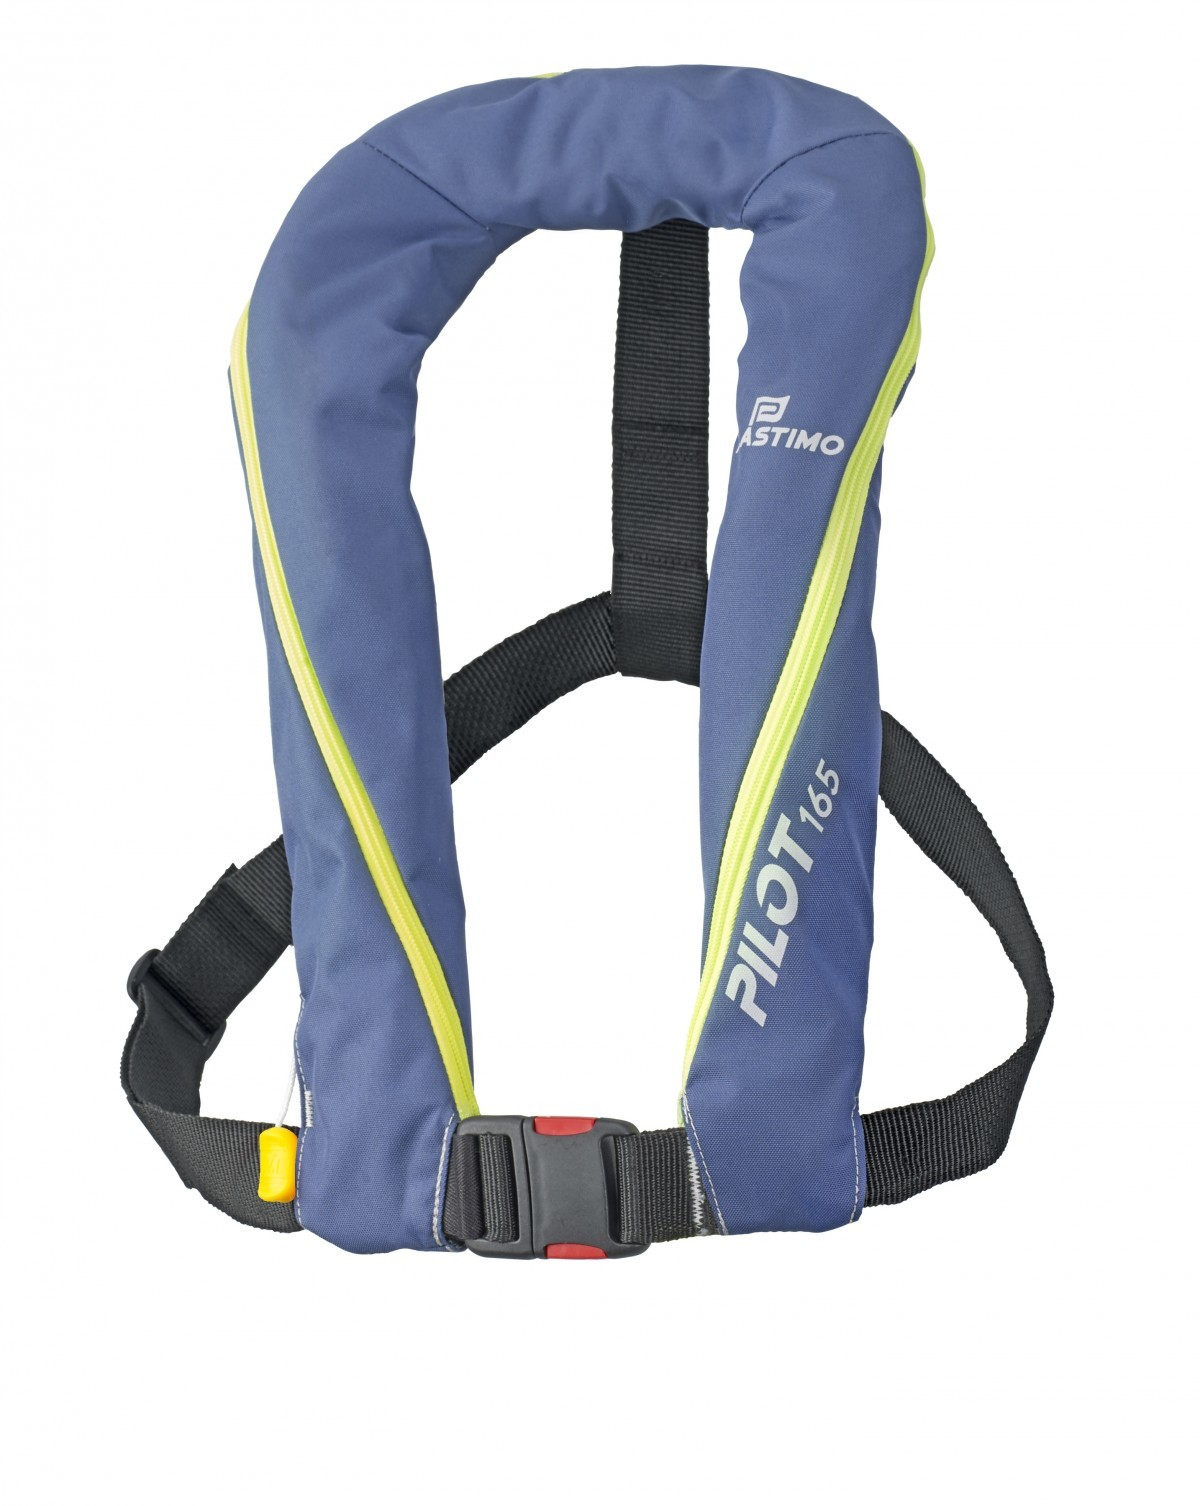 New pilot 165 inflatable lifejacket without harness